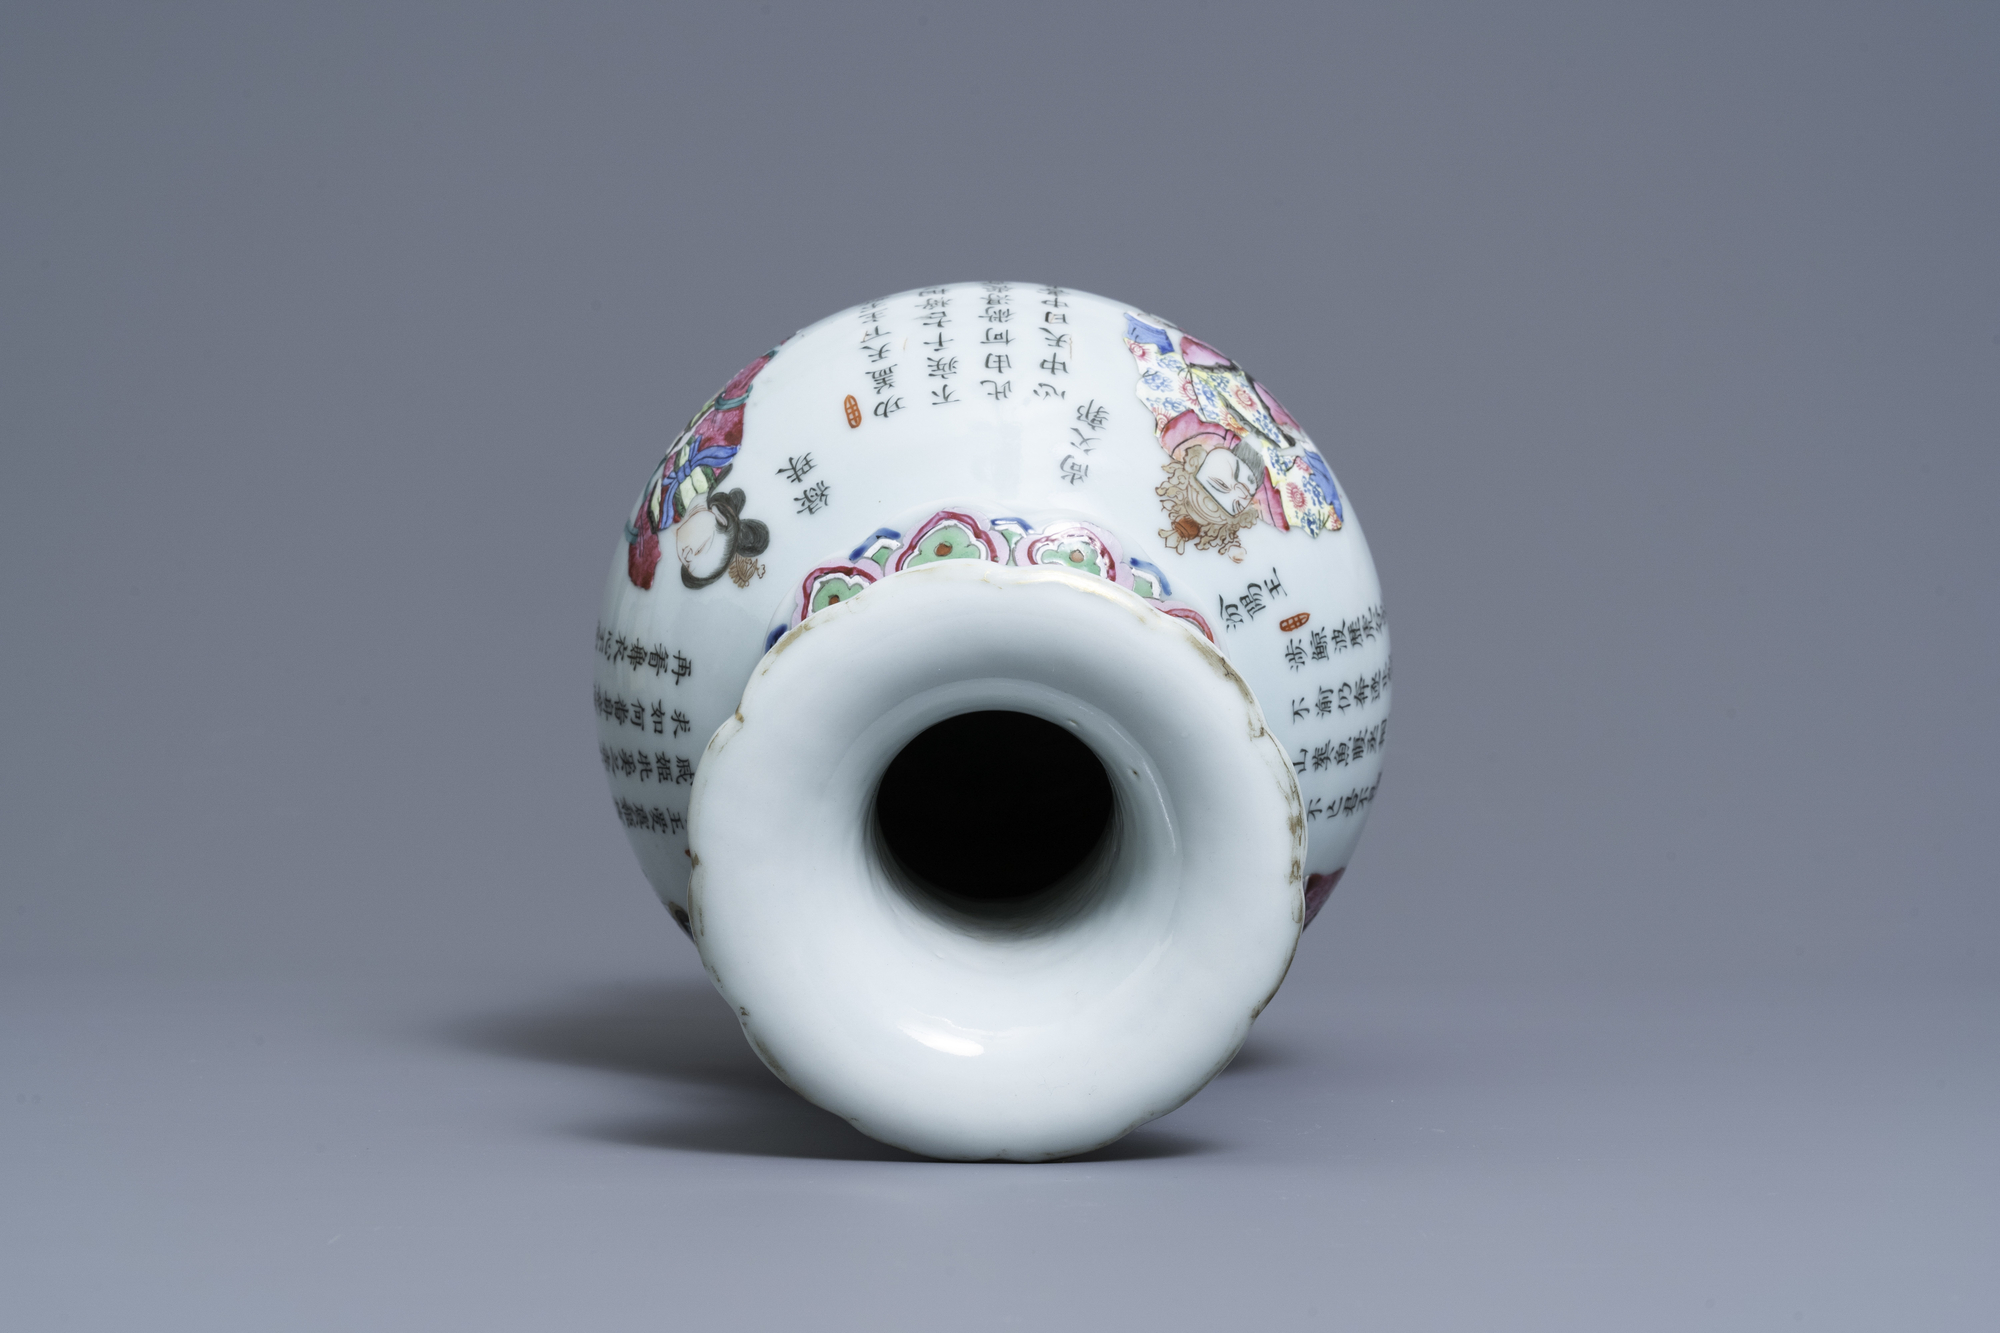 A Chinese famille rose 'Wu Shuang Pu' vase, 19th C. - Image 5 of 6